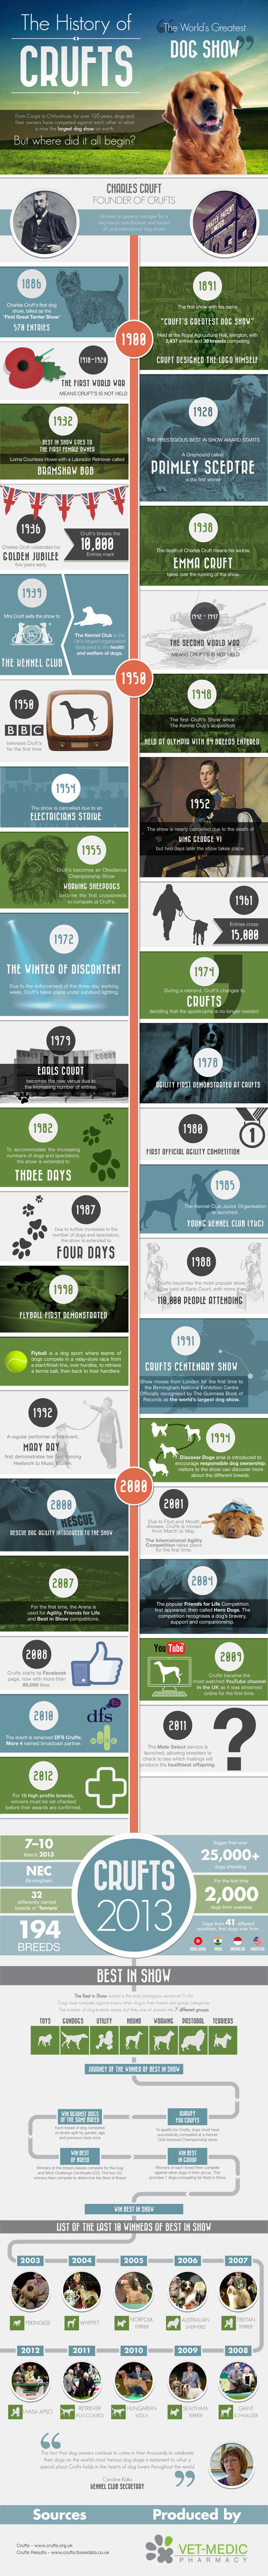 11. A History of Crufts VS Vet Medic Pharmacy